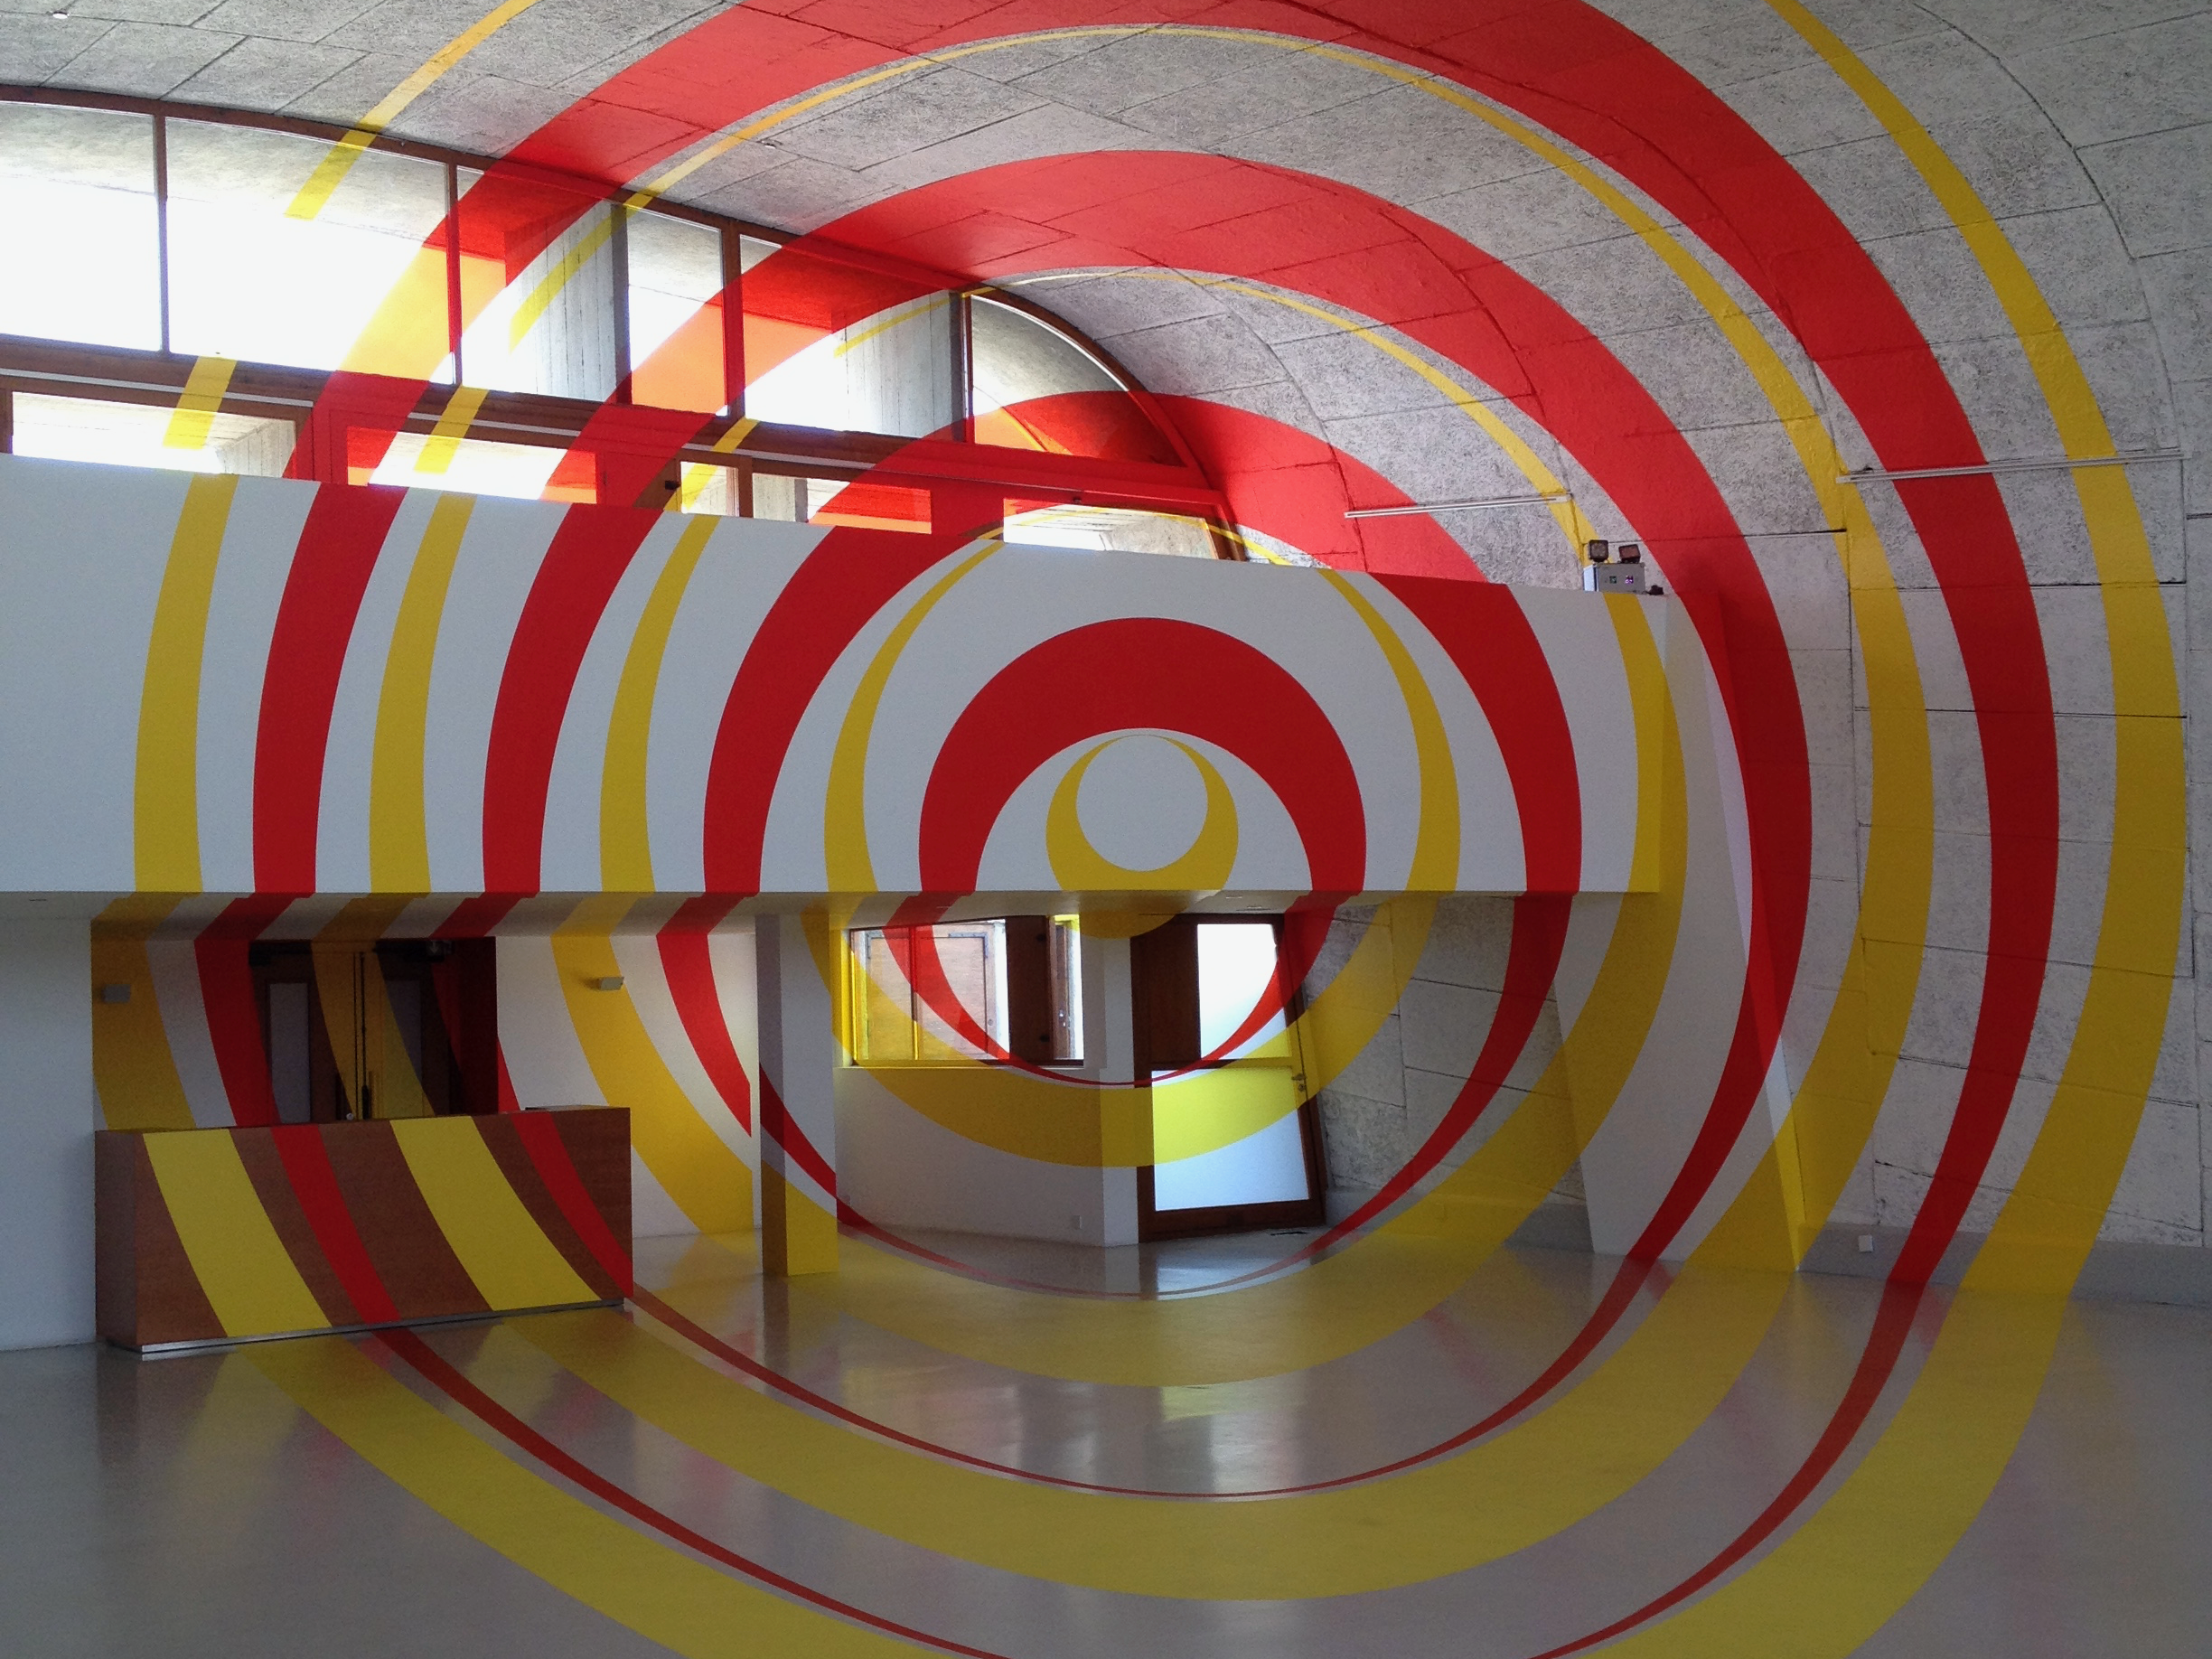 A red and yellow circle inside a room showing an artwork of Felice Varini in the MAMO, Marseille Modulor on the roof of the Cité Radieuse in Marseille.